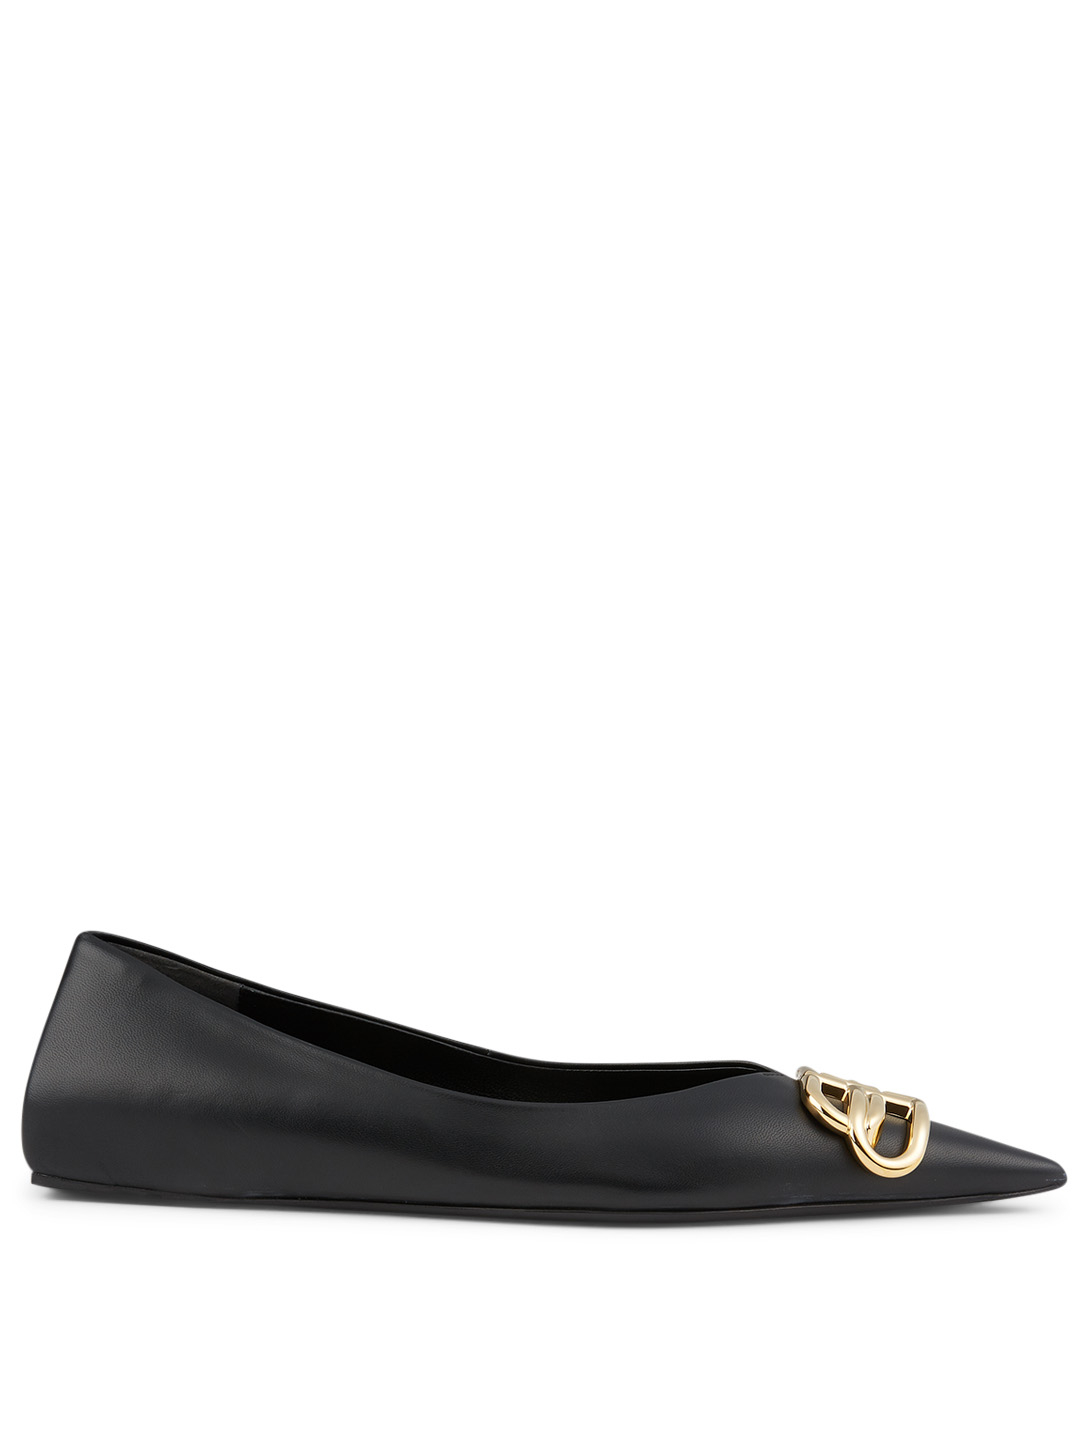 BALENCIAGA Square Knife BB Leather Ballet Flats Women's Black